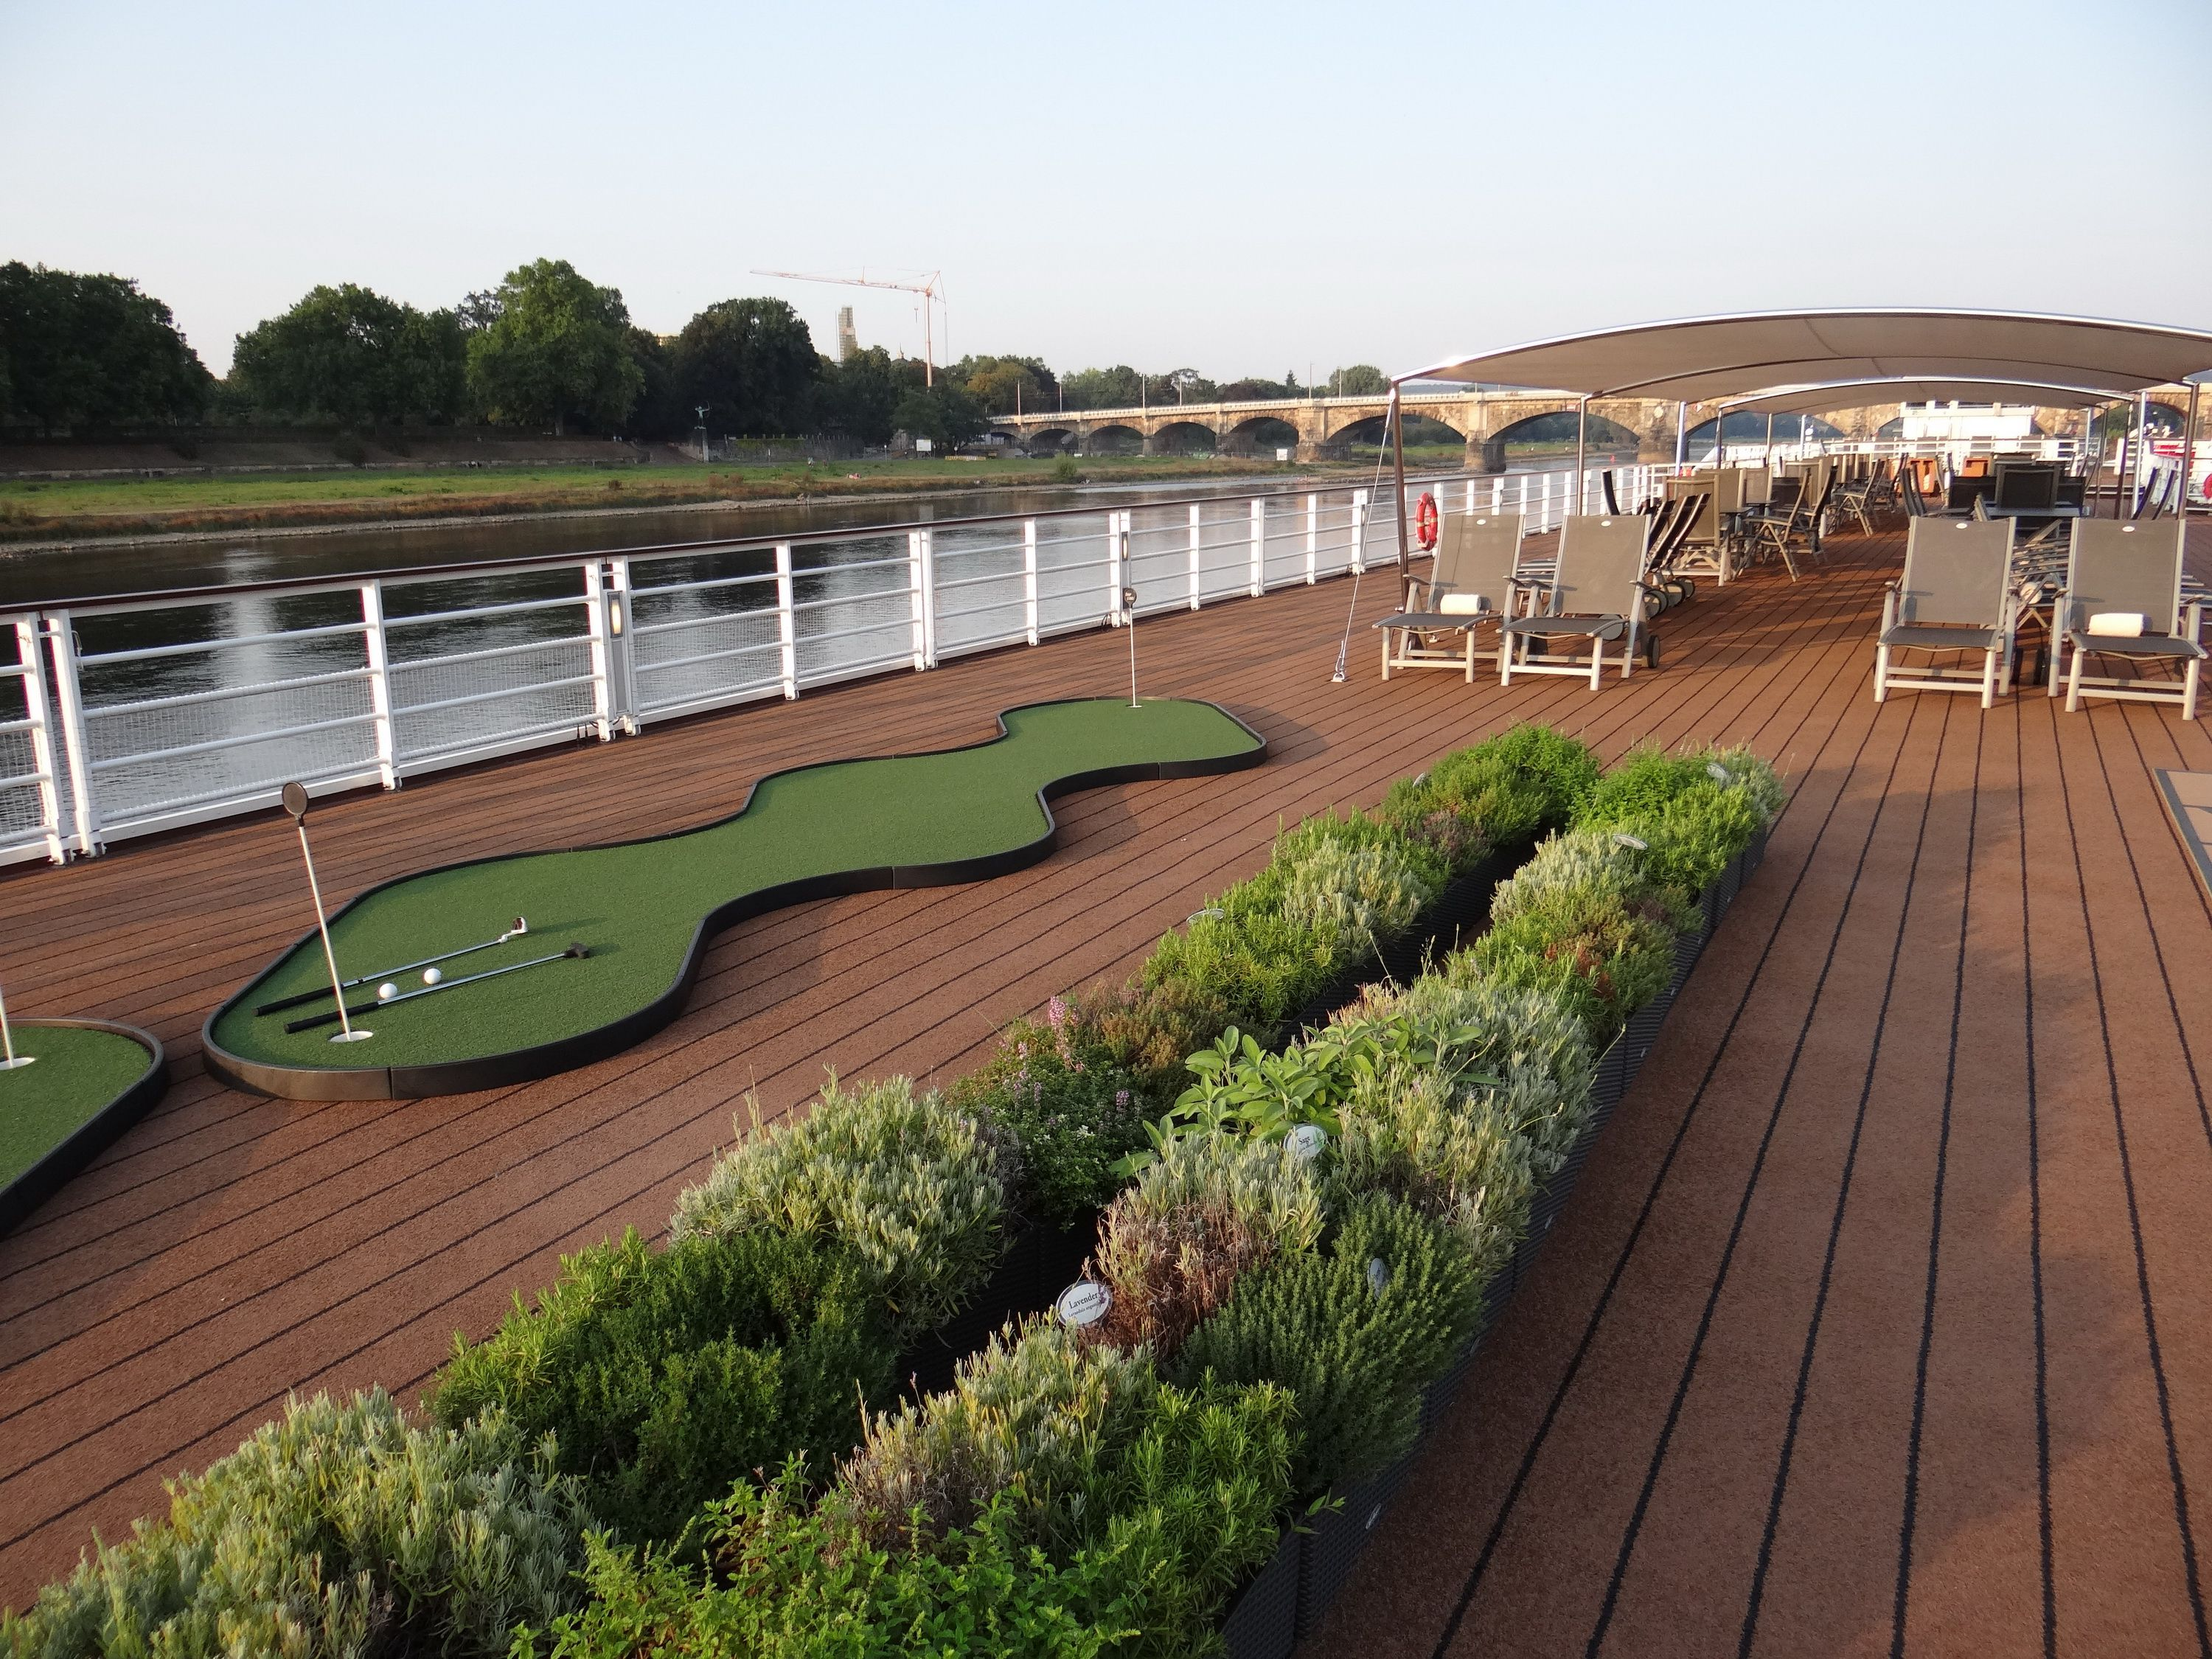 Herb garden and putting green on the Viking Elbe River cruise ships